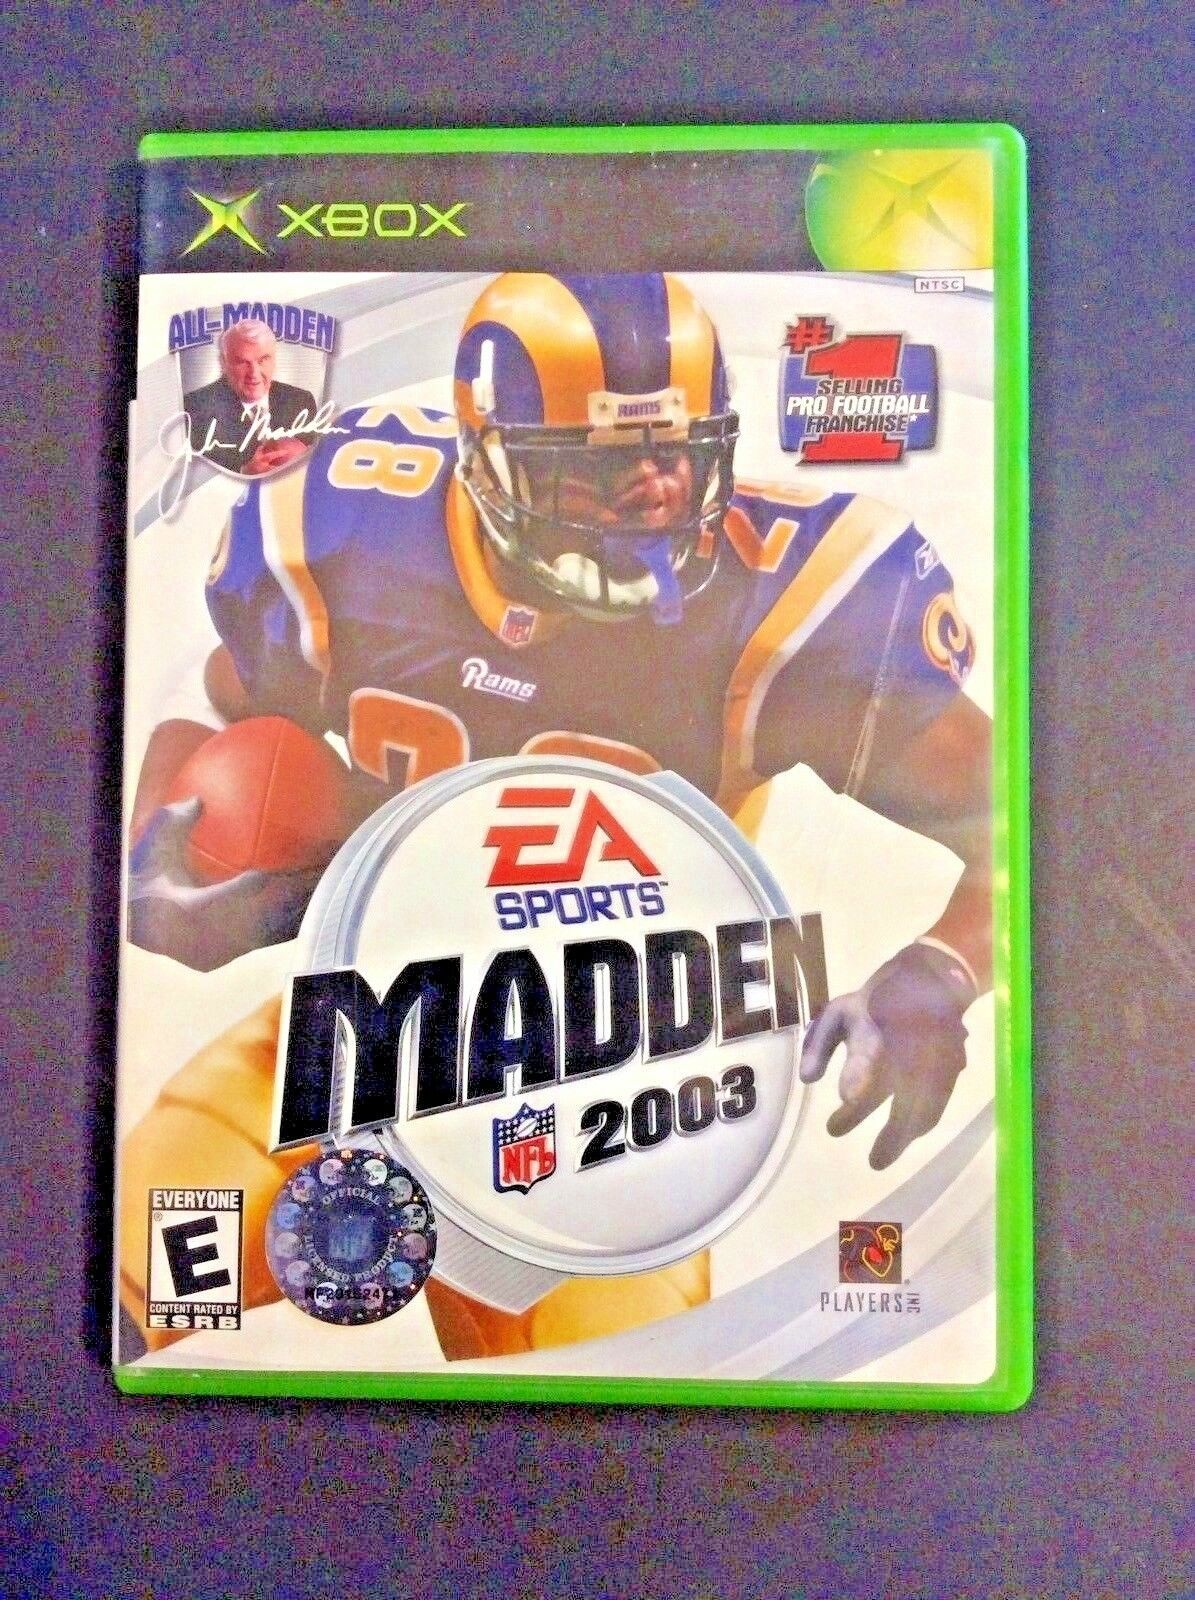 Madden Xbox NFL 2003 EA Sport Video Game Football The Best Gets Better Microsoft